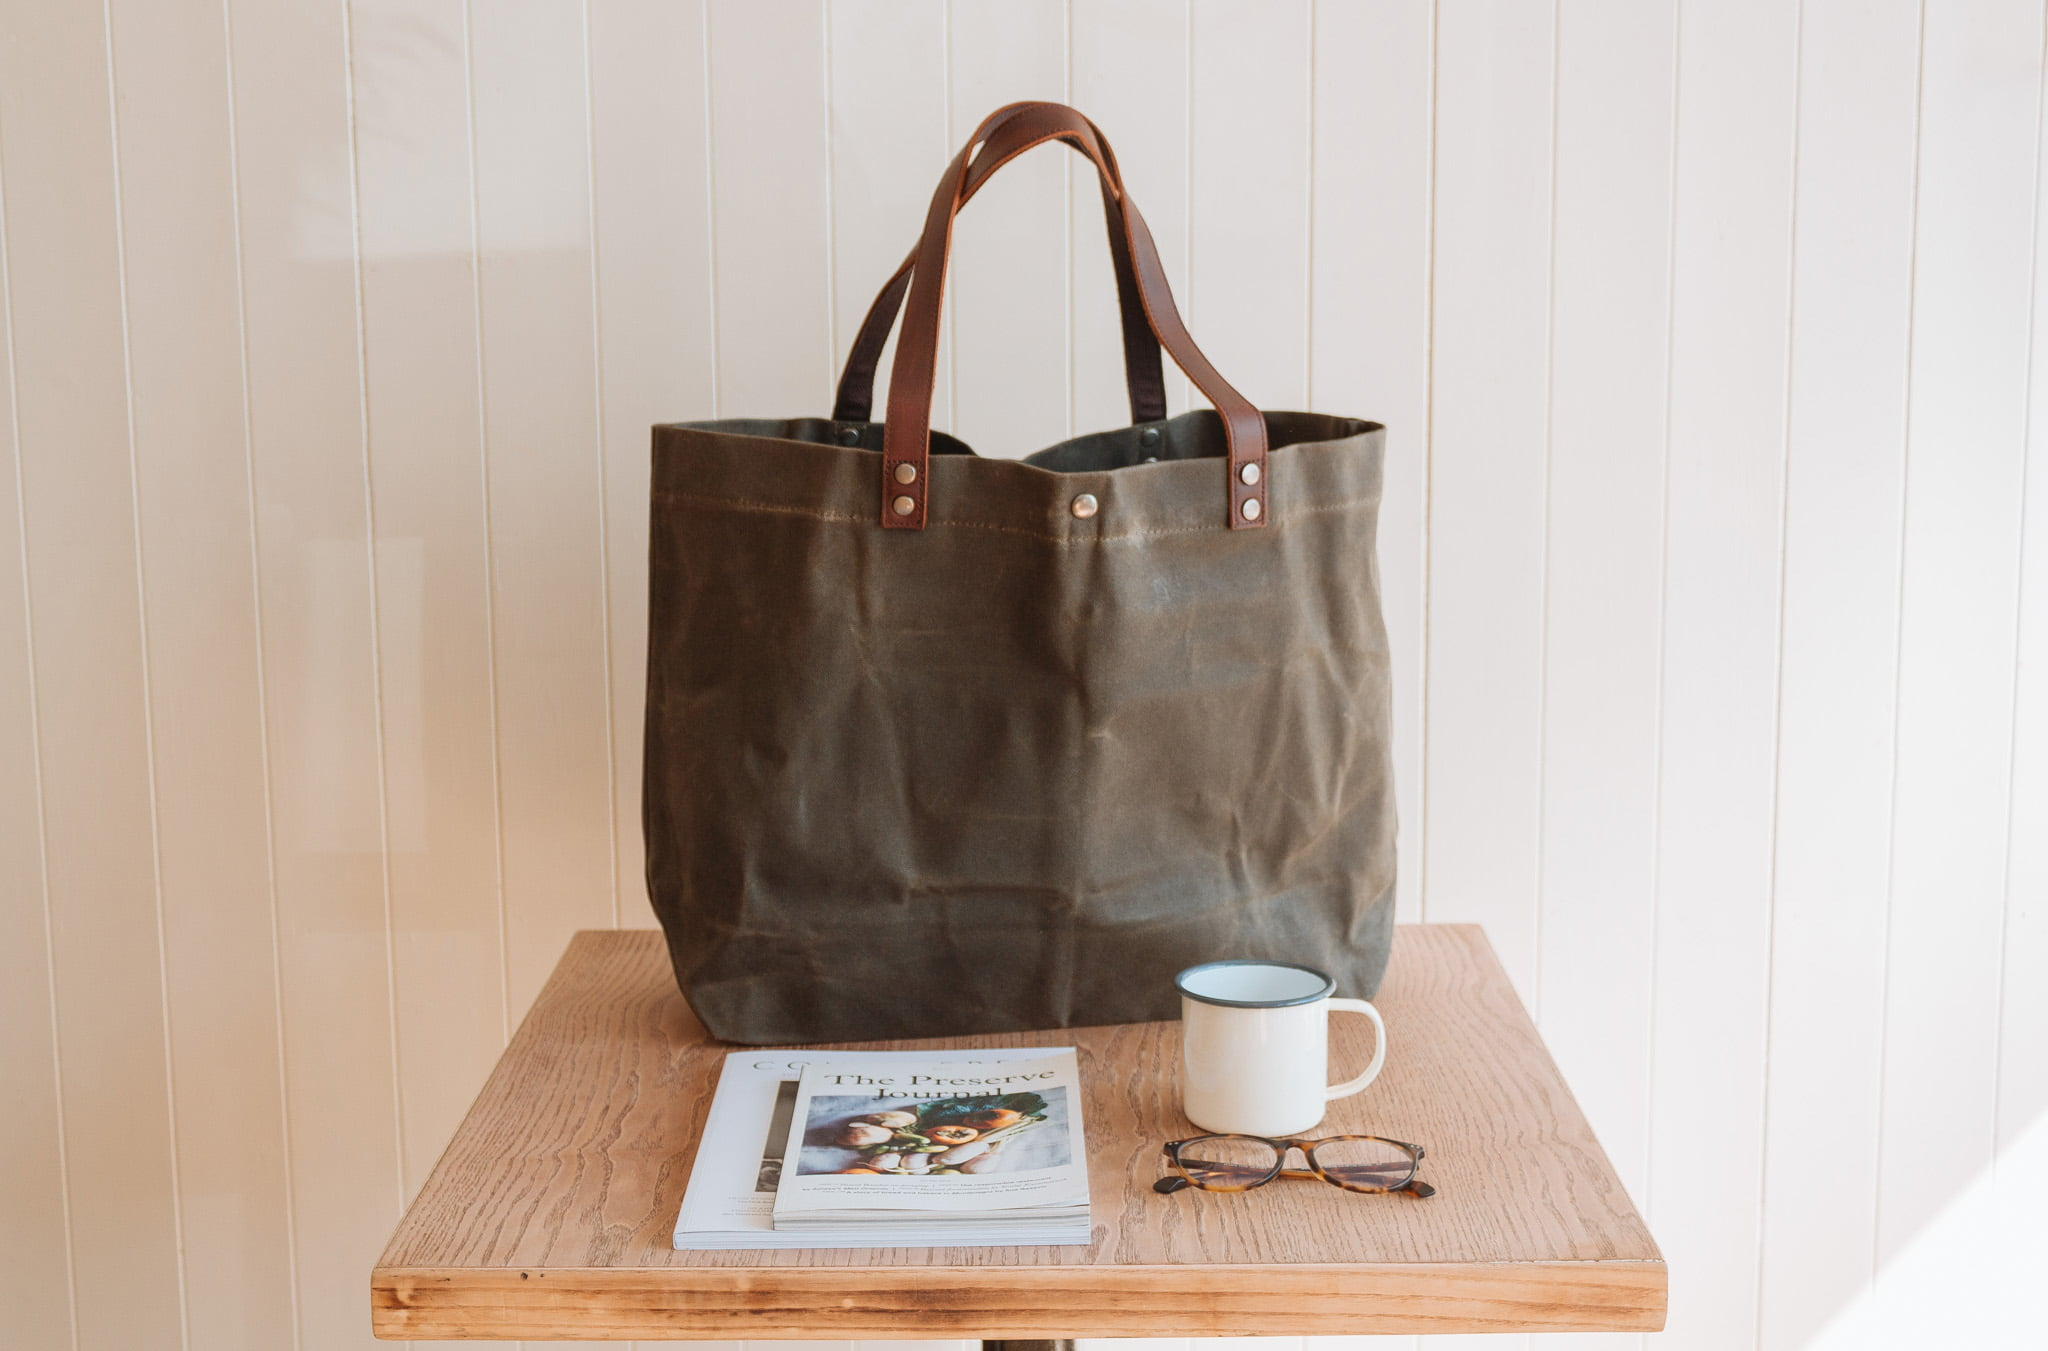 Waxed Cotton Canvas and Leather Tote Bag - Rugged Weatherproof Shoulder Hand Bag Tote - The Brierley Tote in Moss Green by Oldfield